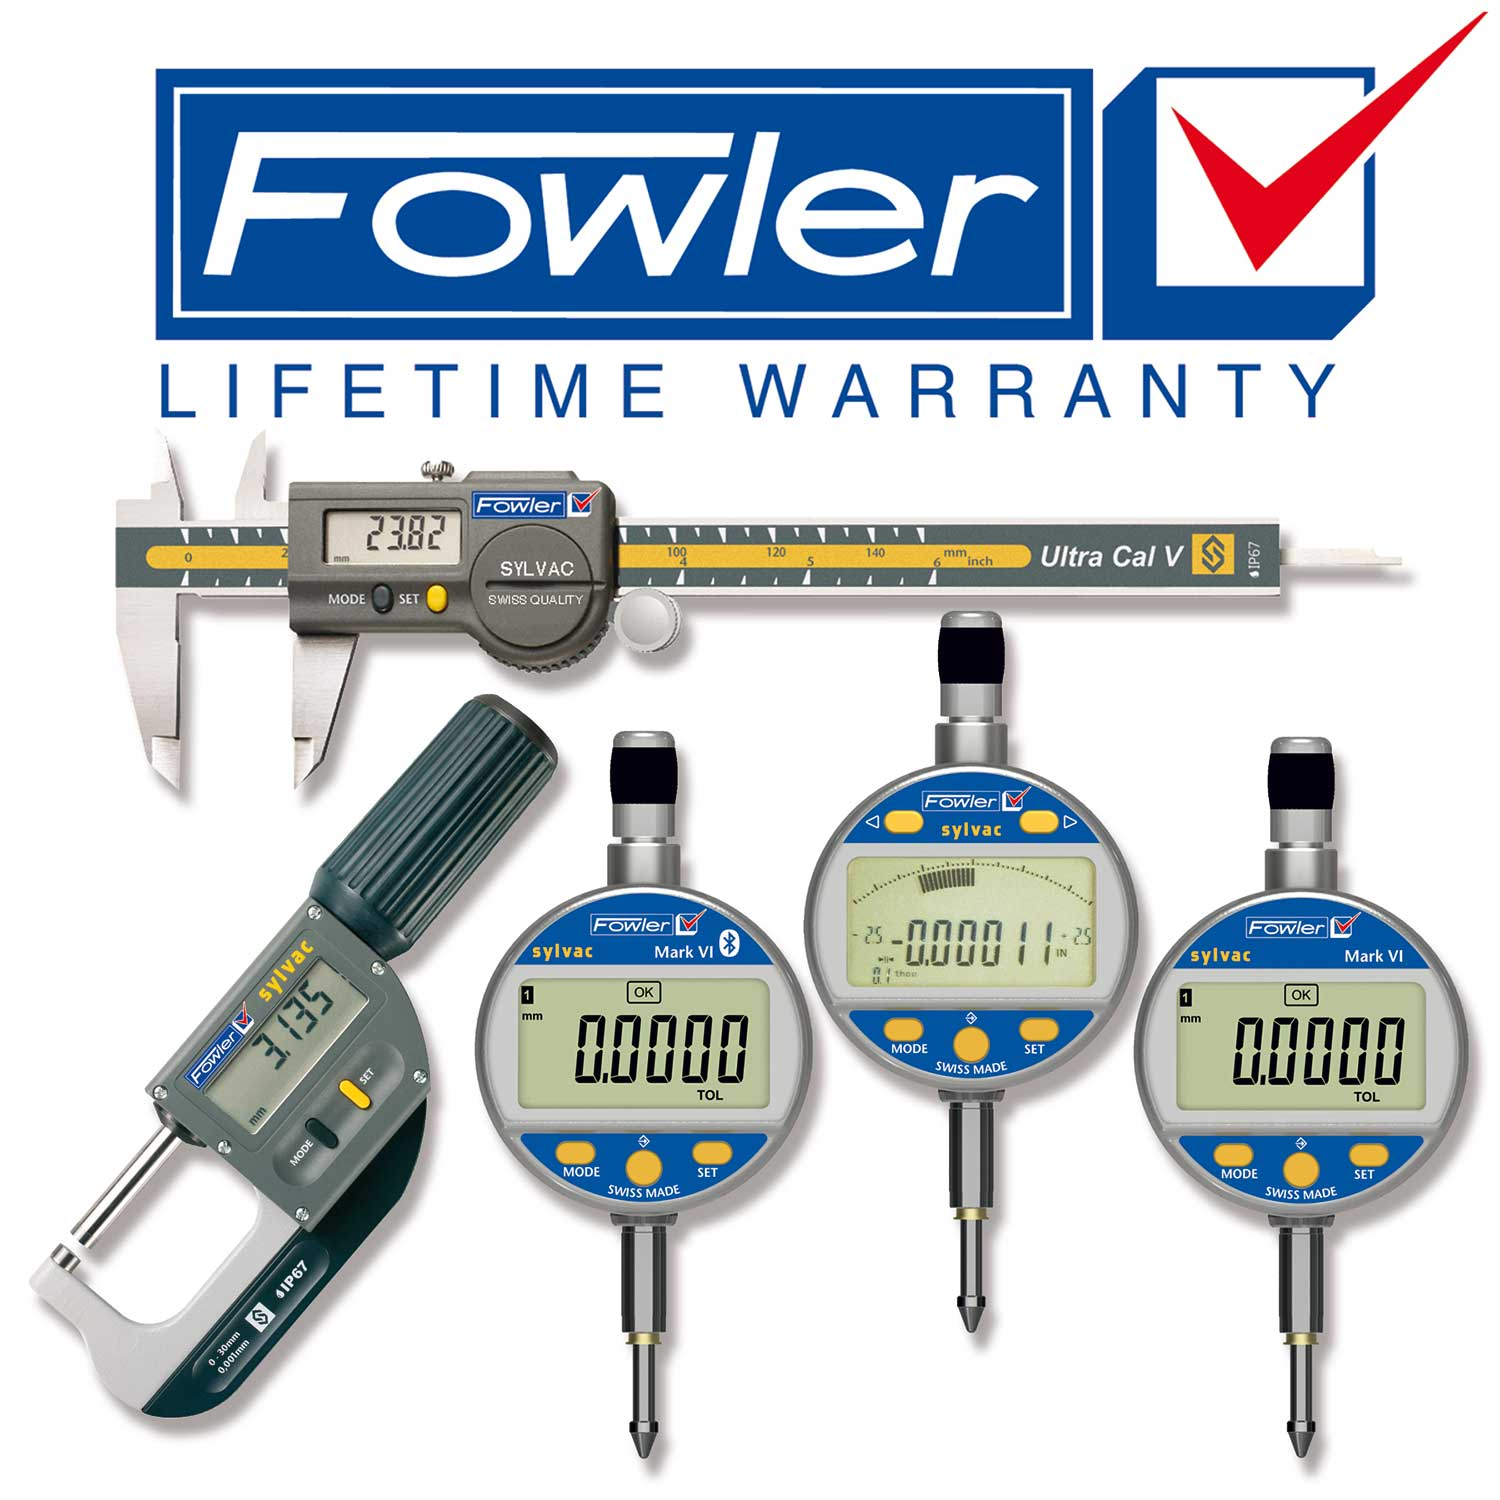 Electronic Measuring Devices For Pickups : Lifetime warranty on precision electronic measurement